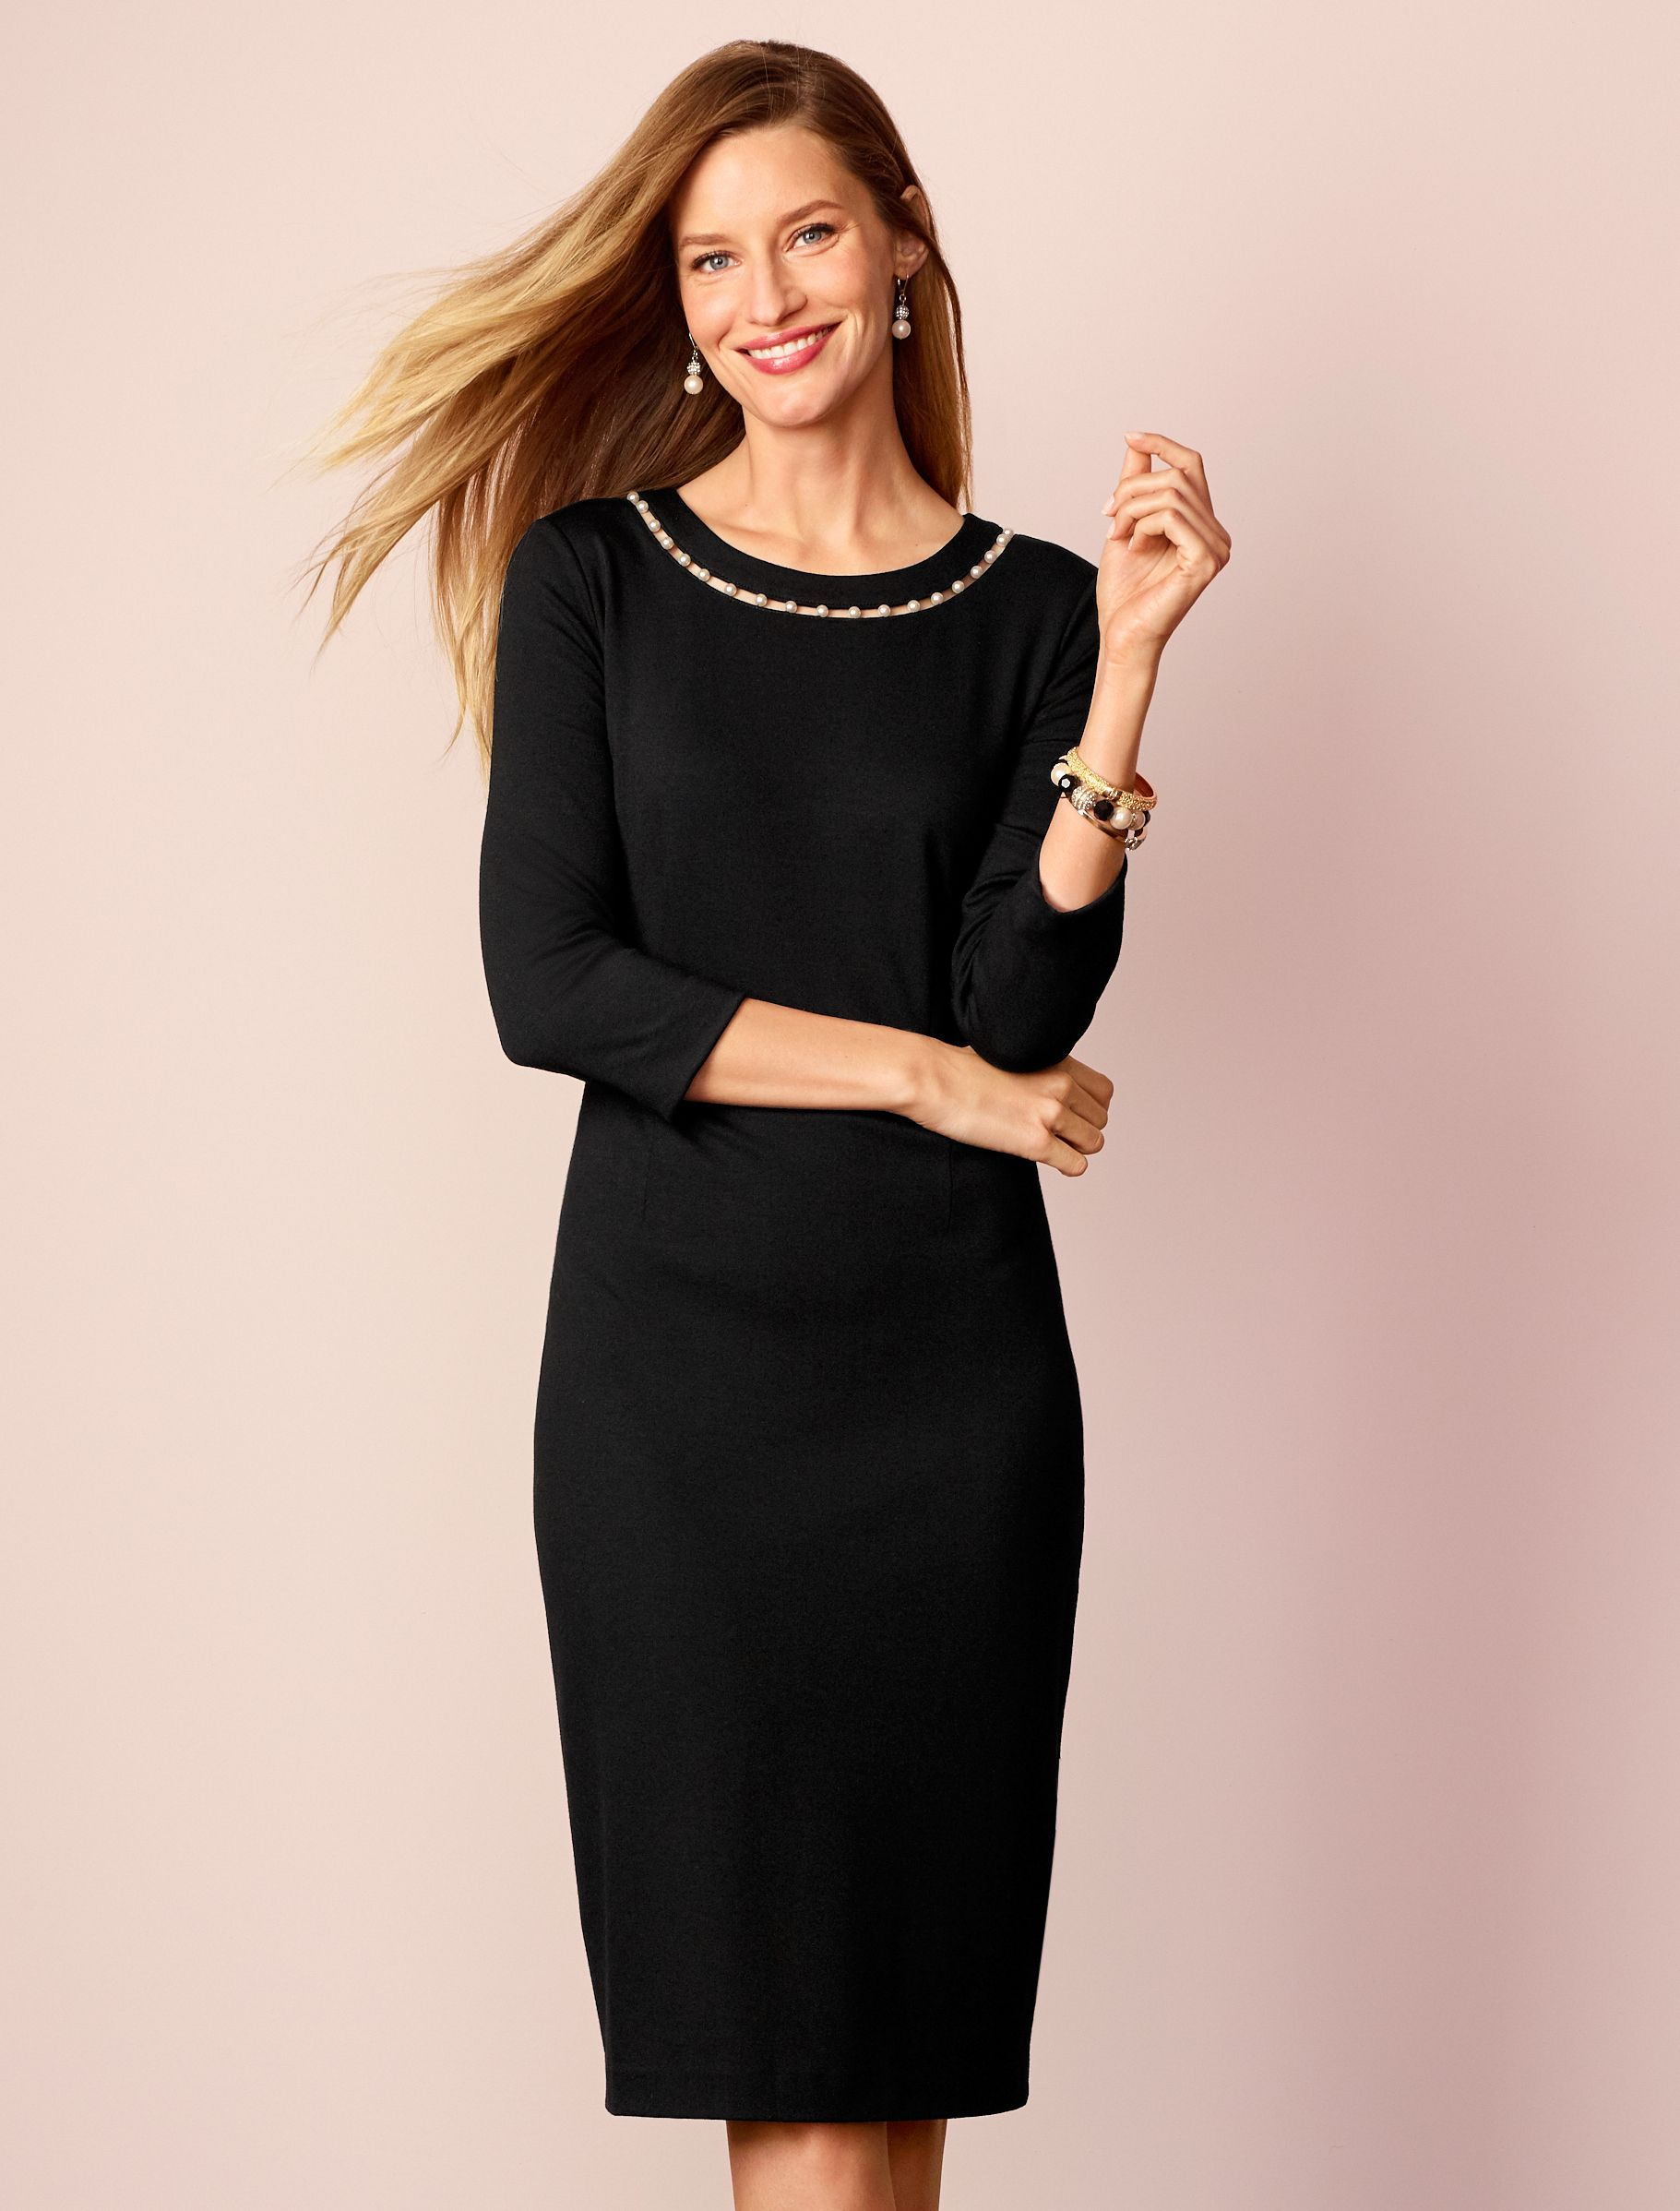 A Sophisticated Pearl Trimmed Neckline Transitions This Little Black Dress From The Office To Dinner With Ease Craft Trendy Dresses Dresses Little Black Dress [ 2396 x 1821 Pixel ]